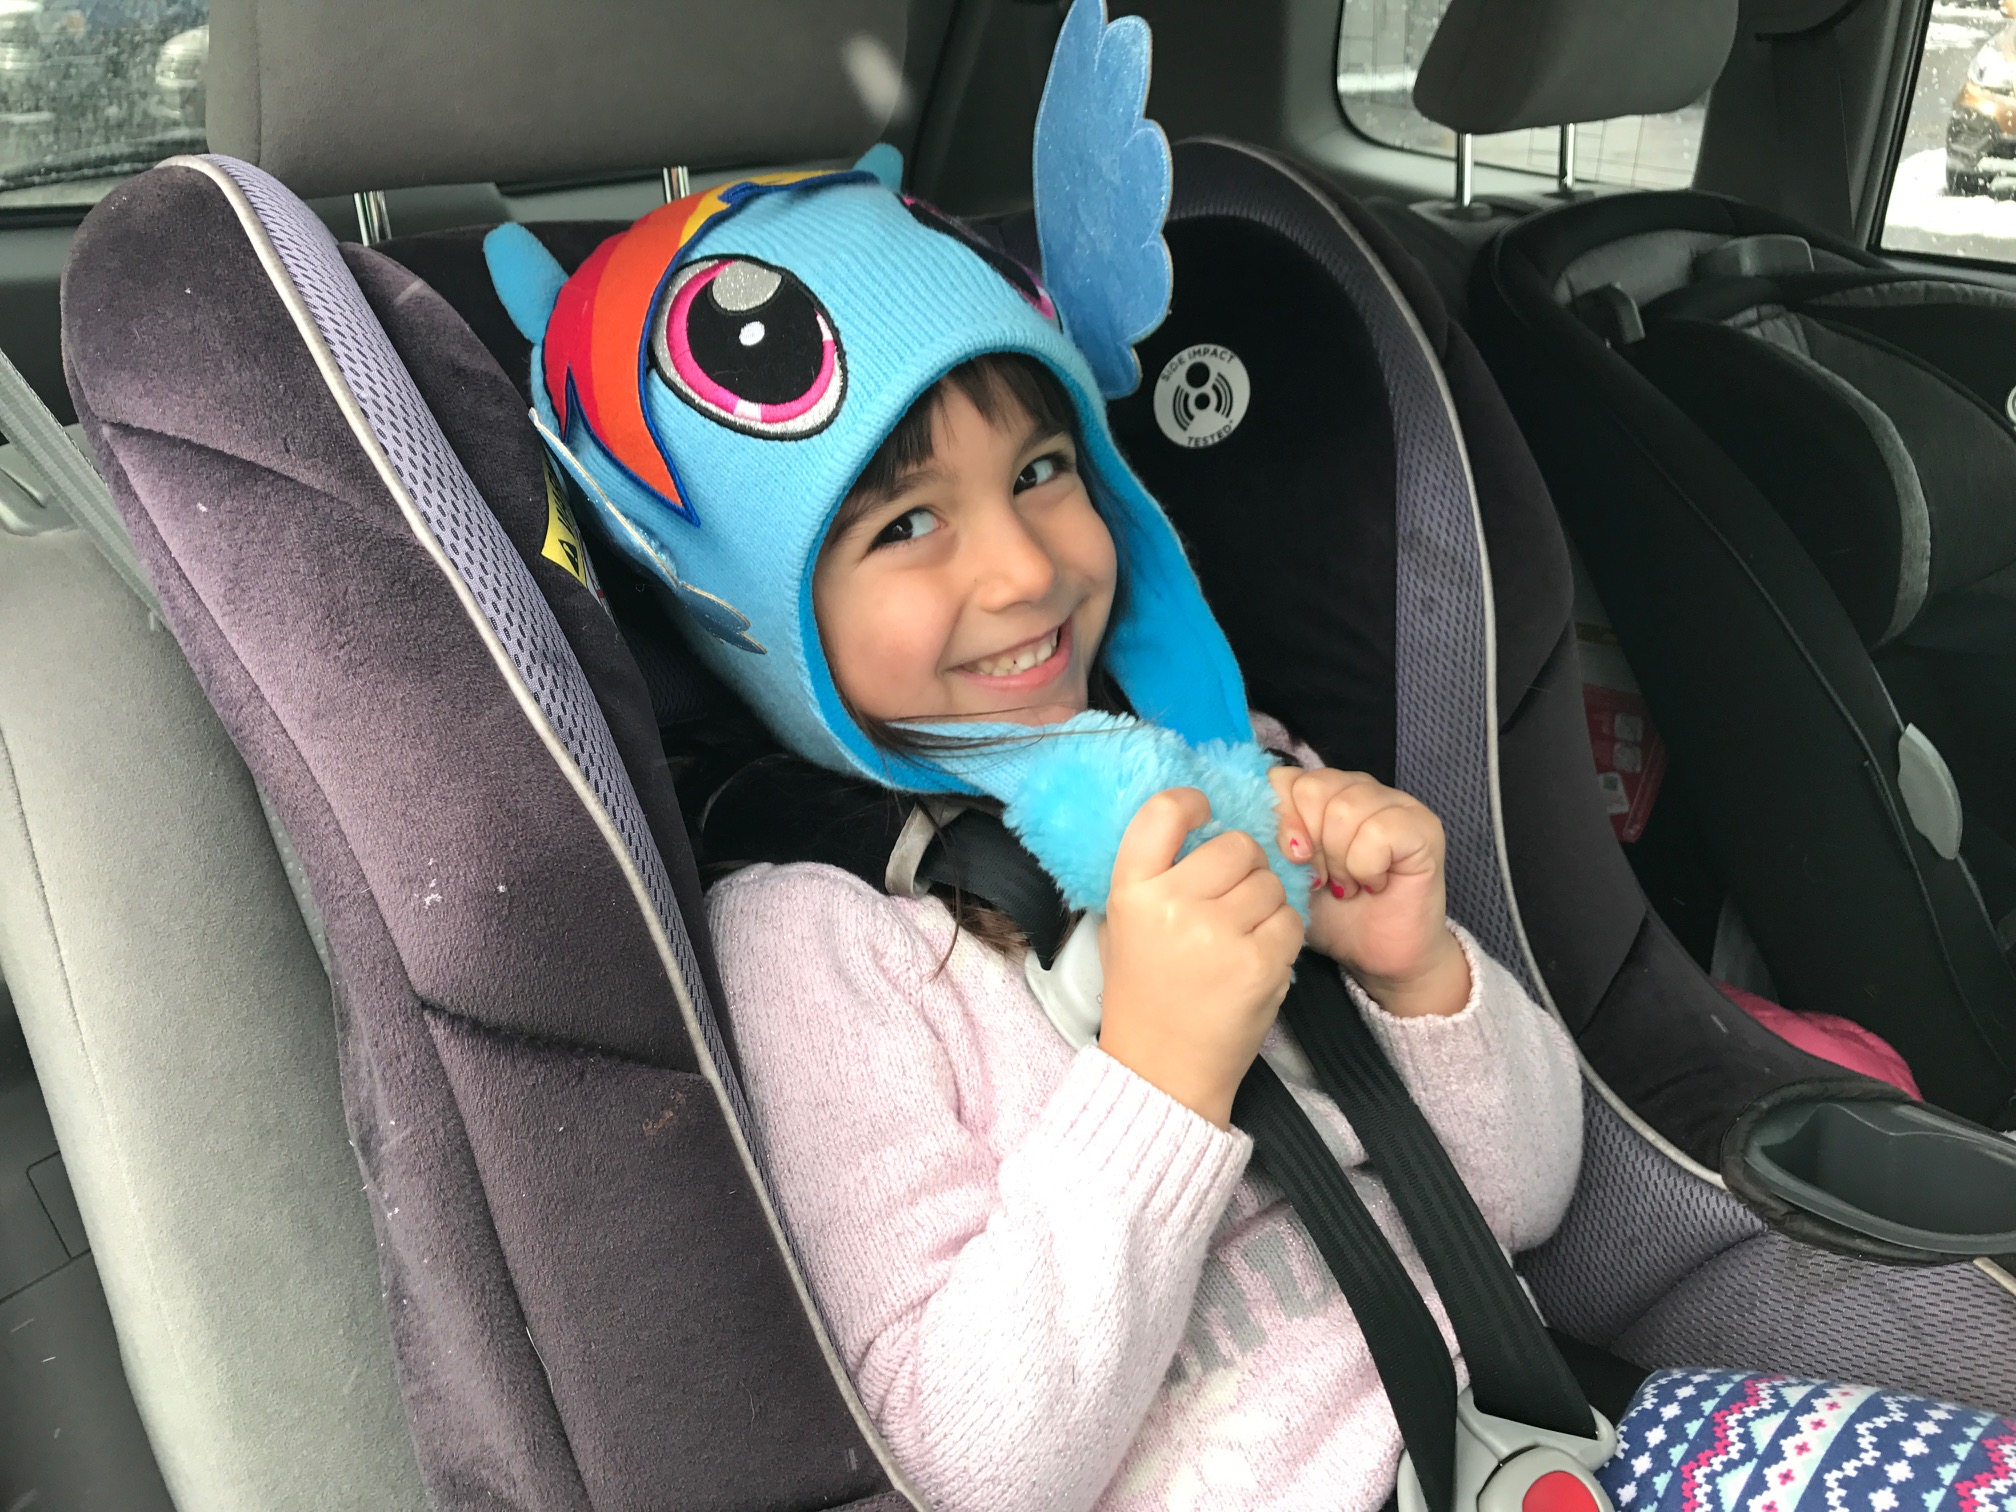 Puffy coats should be taken off before kids are strapped in to car seats. (Mary Friona-Celani/Special to The News)